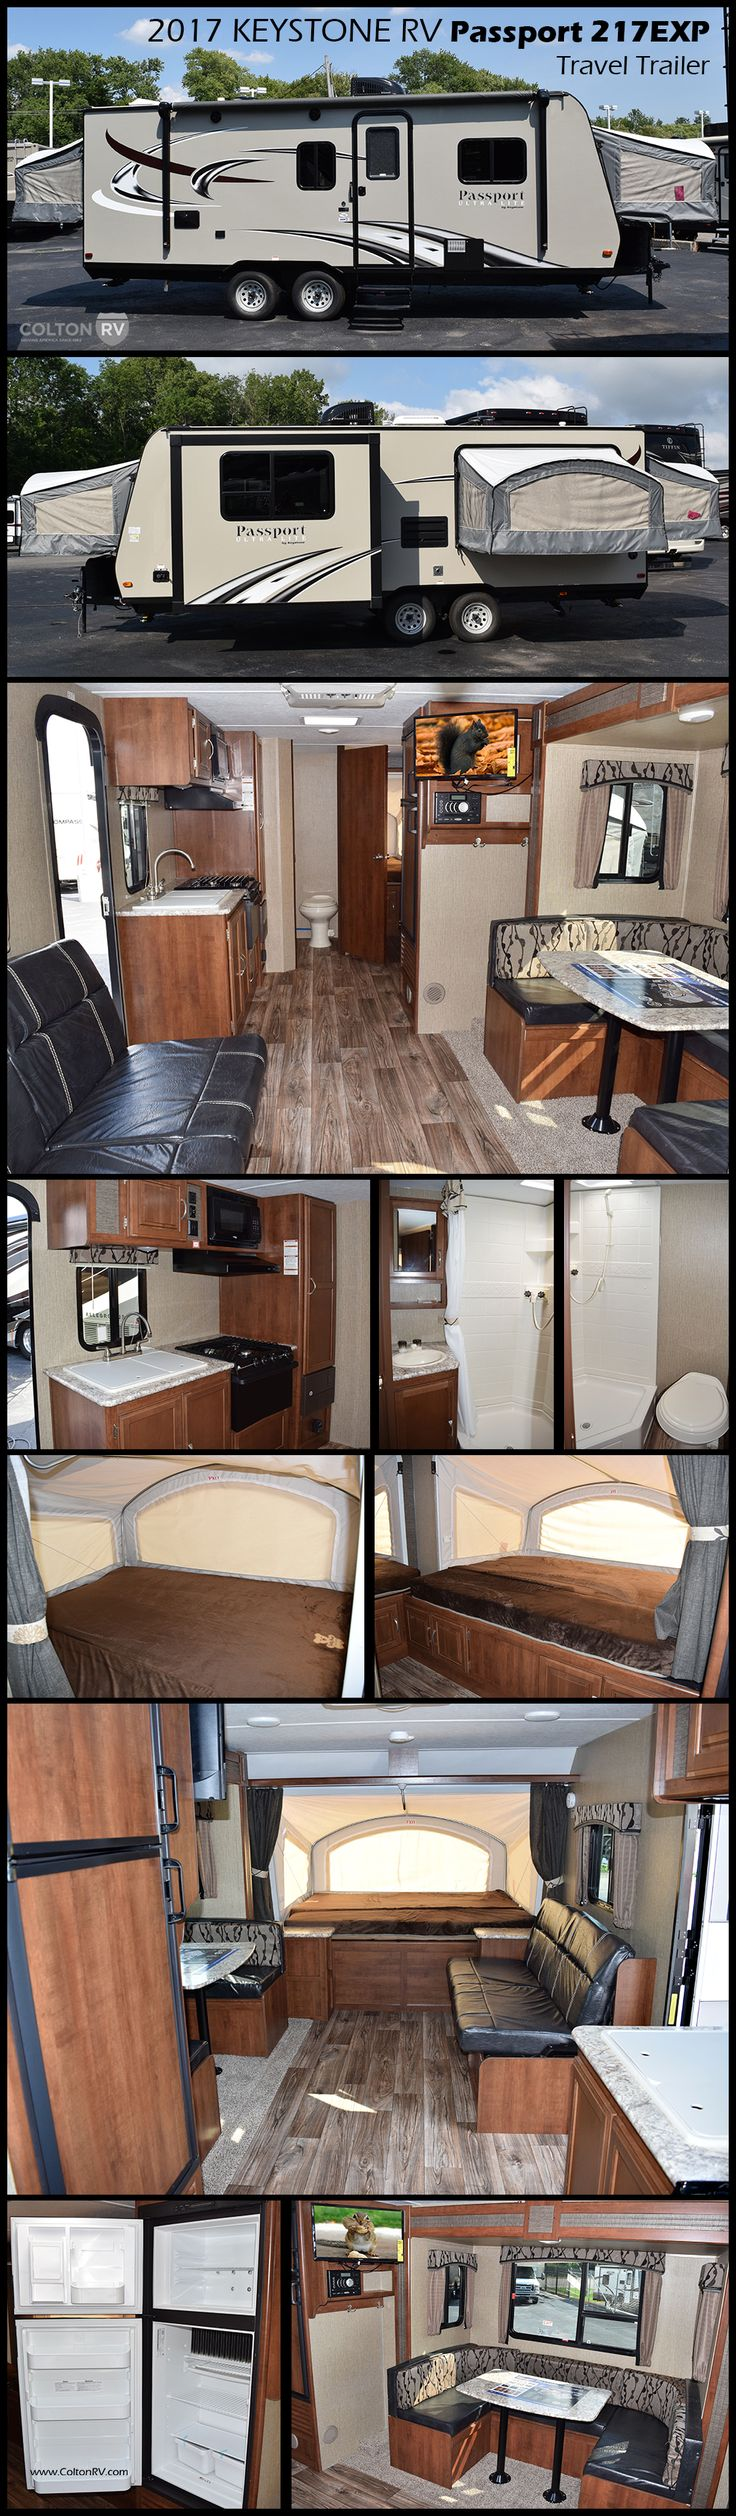 The 2017 Keystone RV Passport Ultra-Lite 217EXP Expandable Travel Trailer has been specifically engineered to maximize sleeping capacity while keeping both weight and overall length of the trailer in mind without sacrificing the look, comfort and amenities. The tent system makes setting up and tearing down your hybrid a breeze. You no longer have to worry about awkward support bars or the tent canvas not being properly sealed to the tent door.